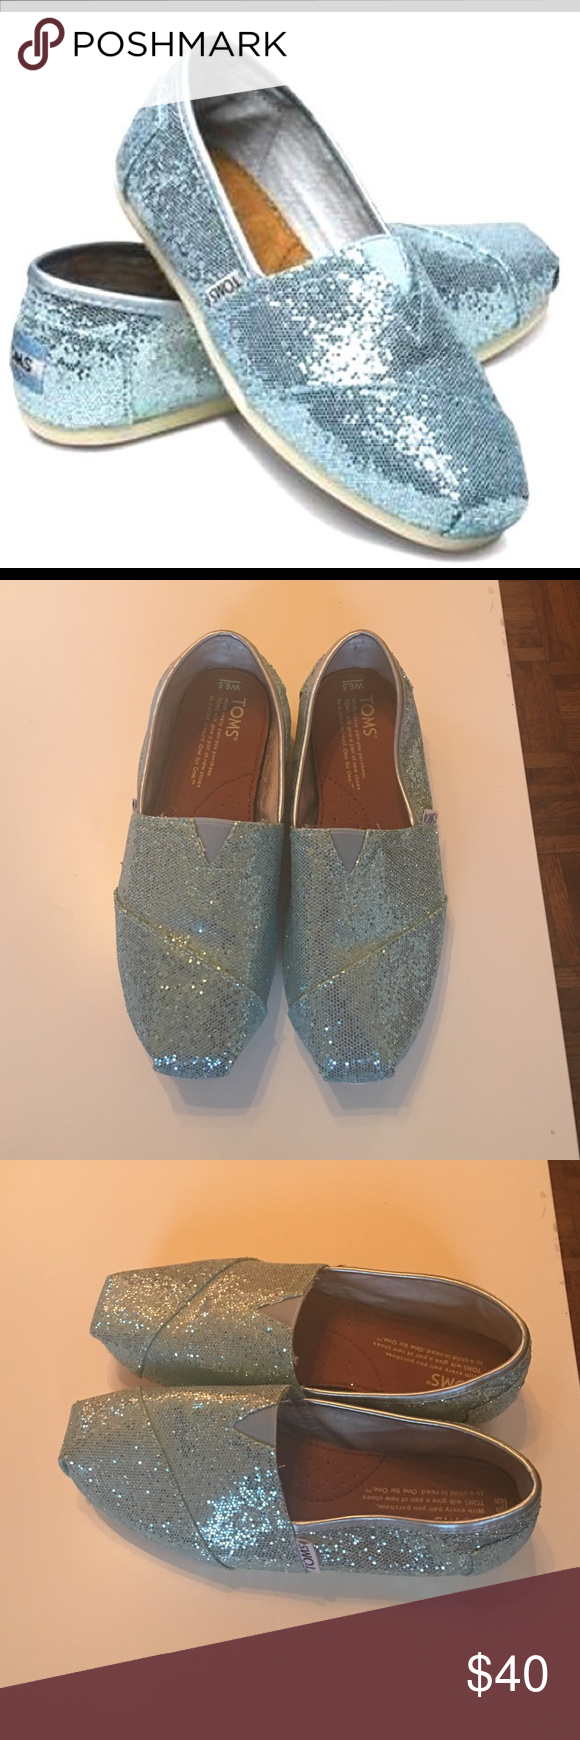 Limited edition sparkly Baby Blue Toms These were very hard to find! Worn once and in mint condition! Sad to see them go but I just don't see myself wearing them any time soon. Toms Shoes